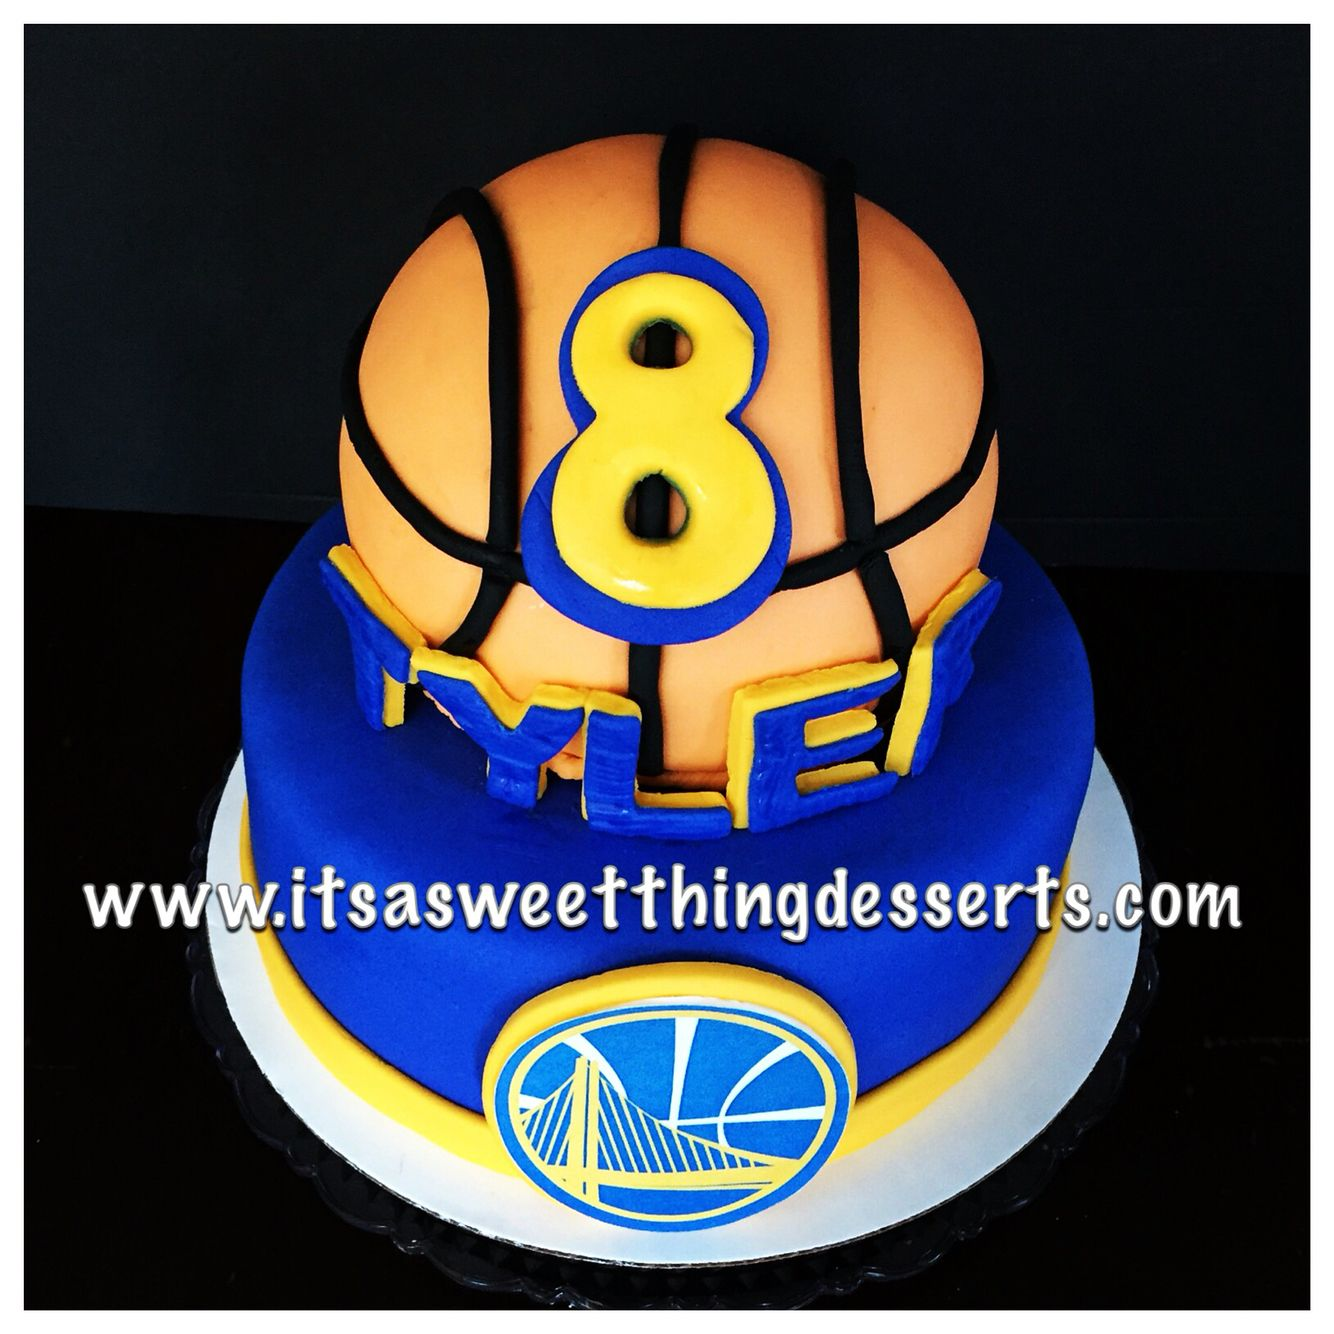 Golden State Warriors Themed Cake Cake Design Pinterest Golden